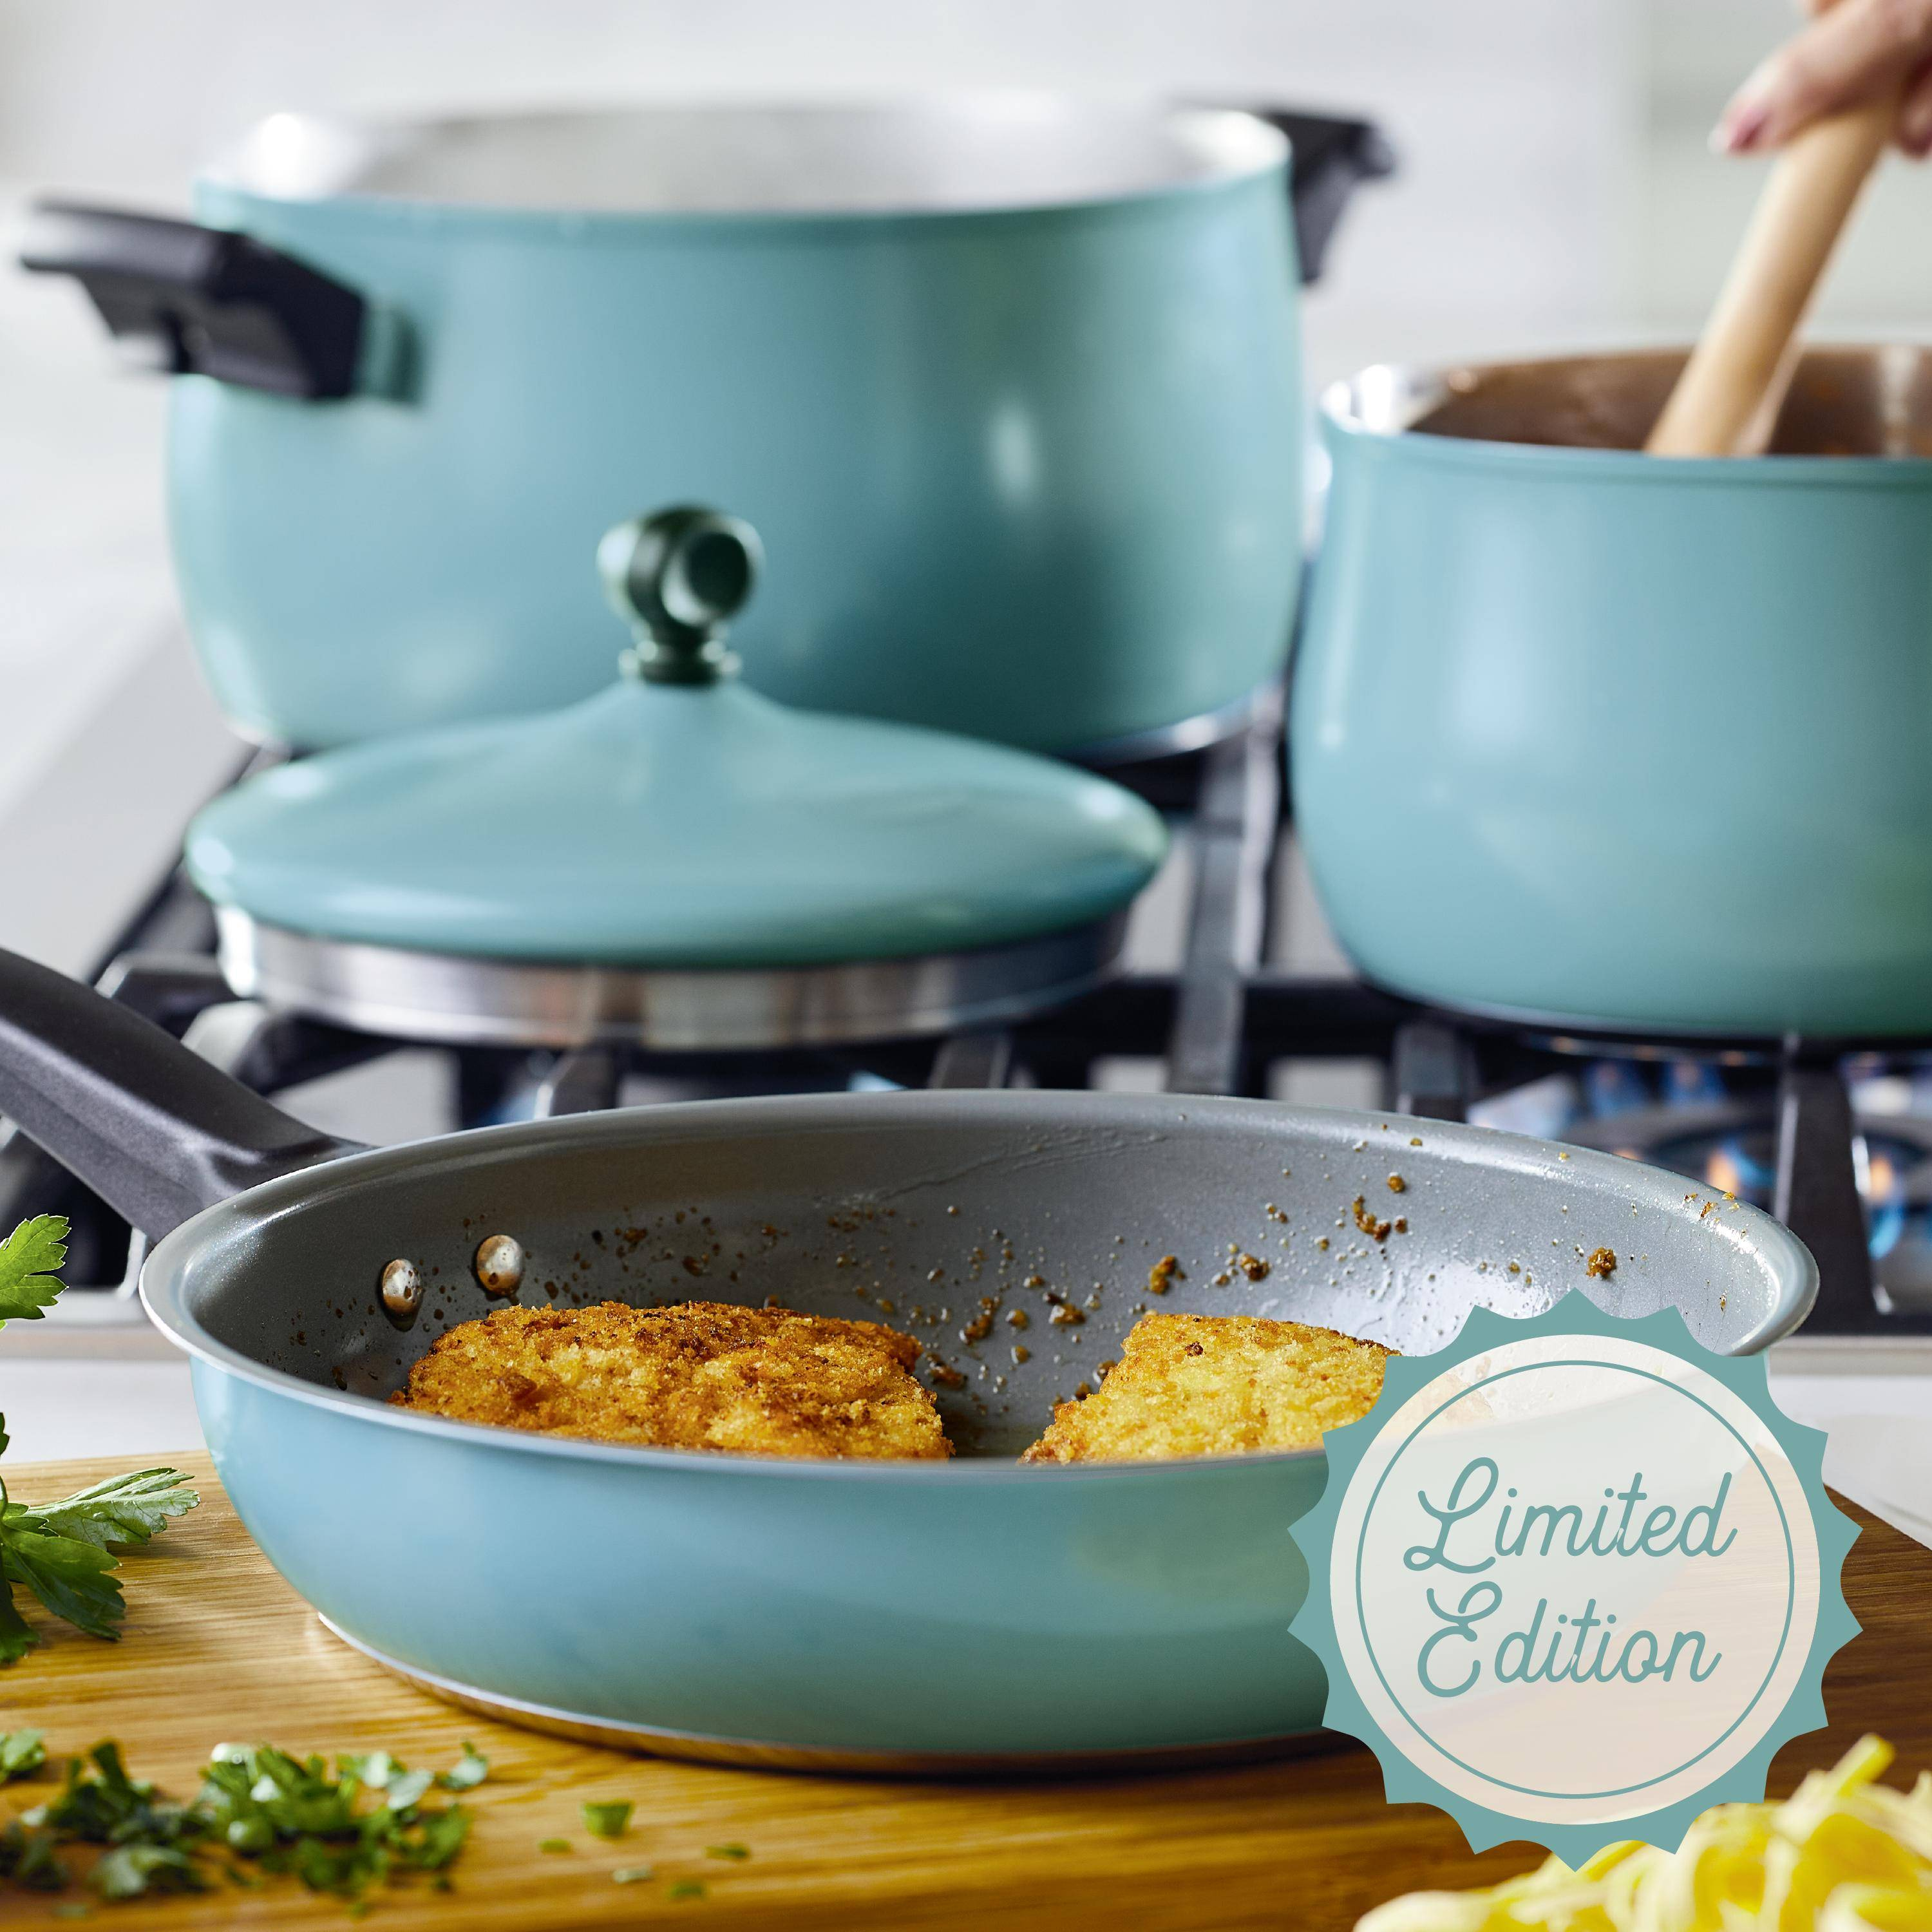 Limited Edition Farberware Cookware